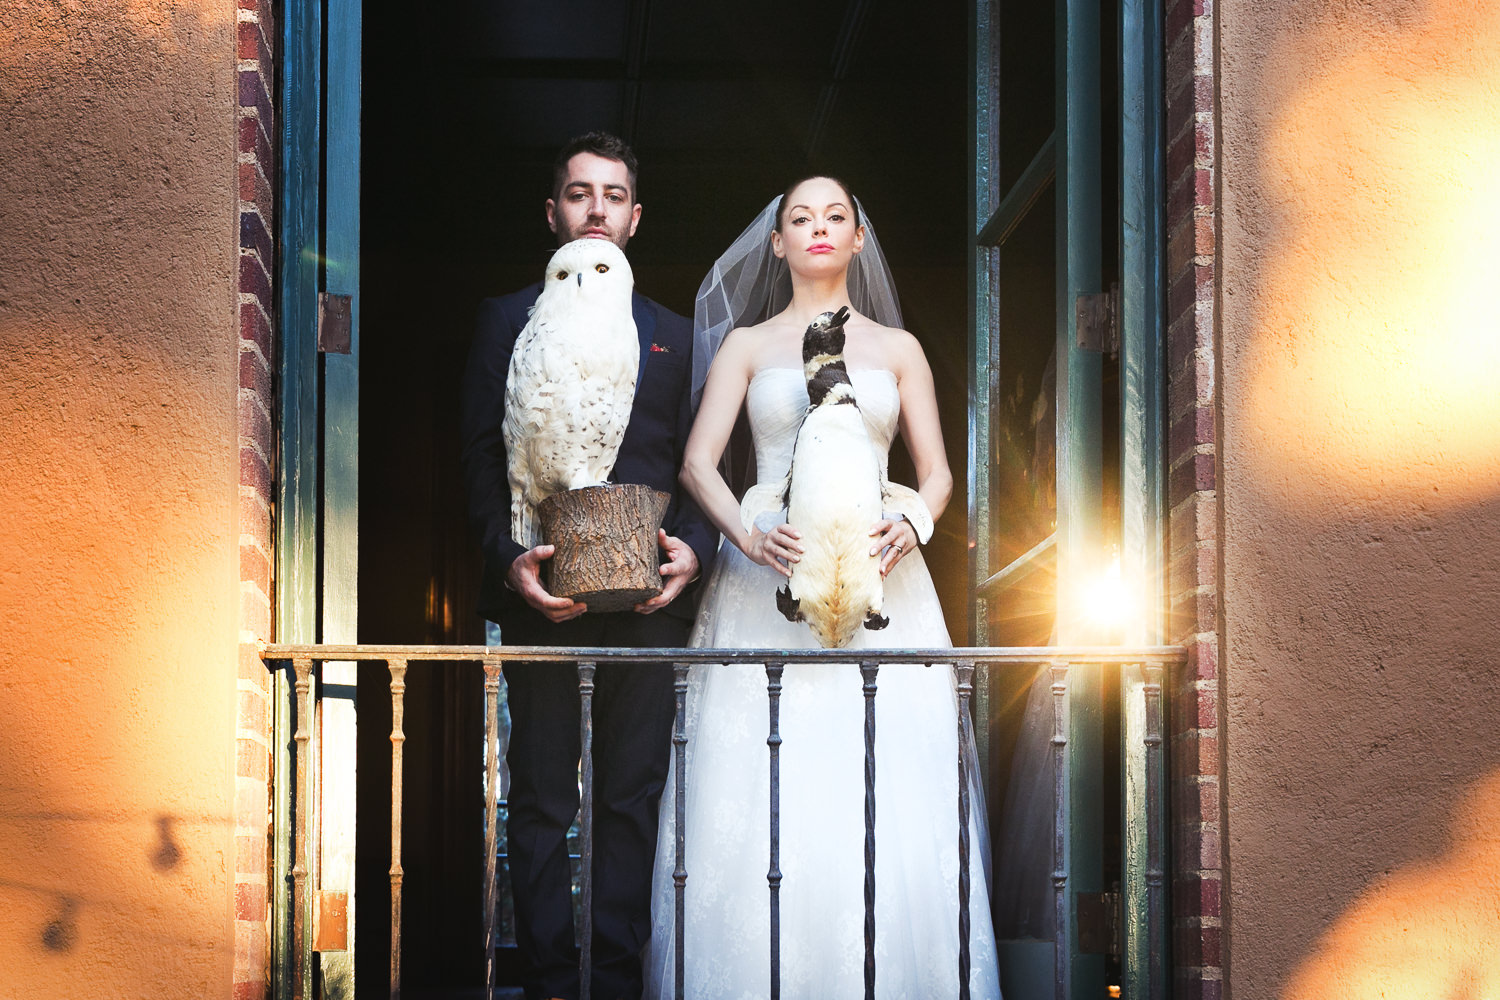 Rose McGowan Wedding at Paramour Estate - On the balcony holding stuffed birds in great shot